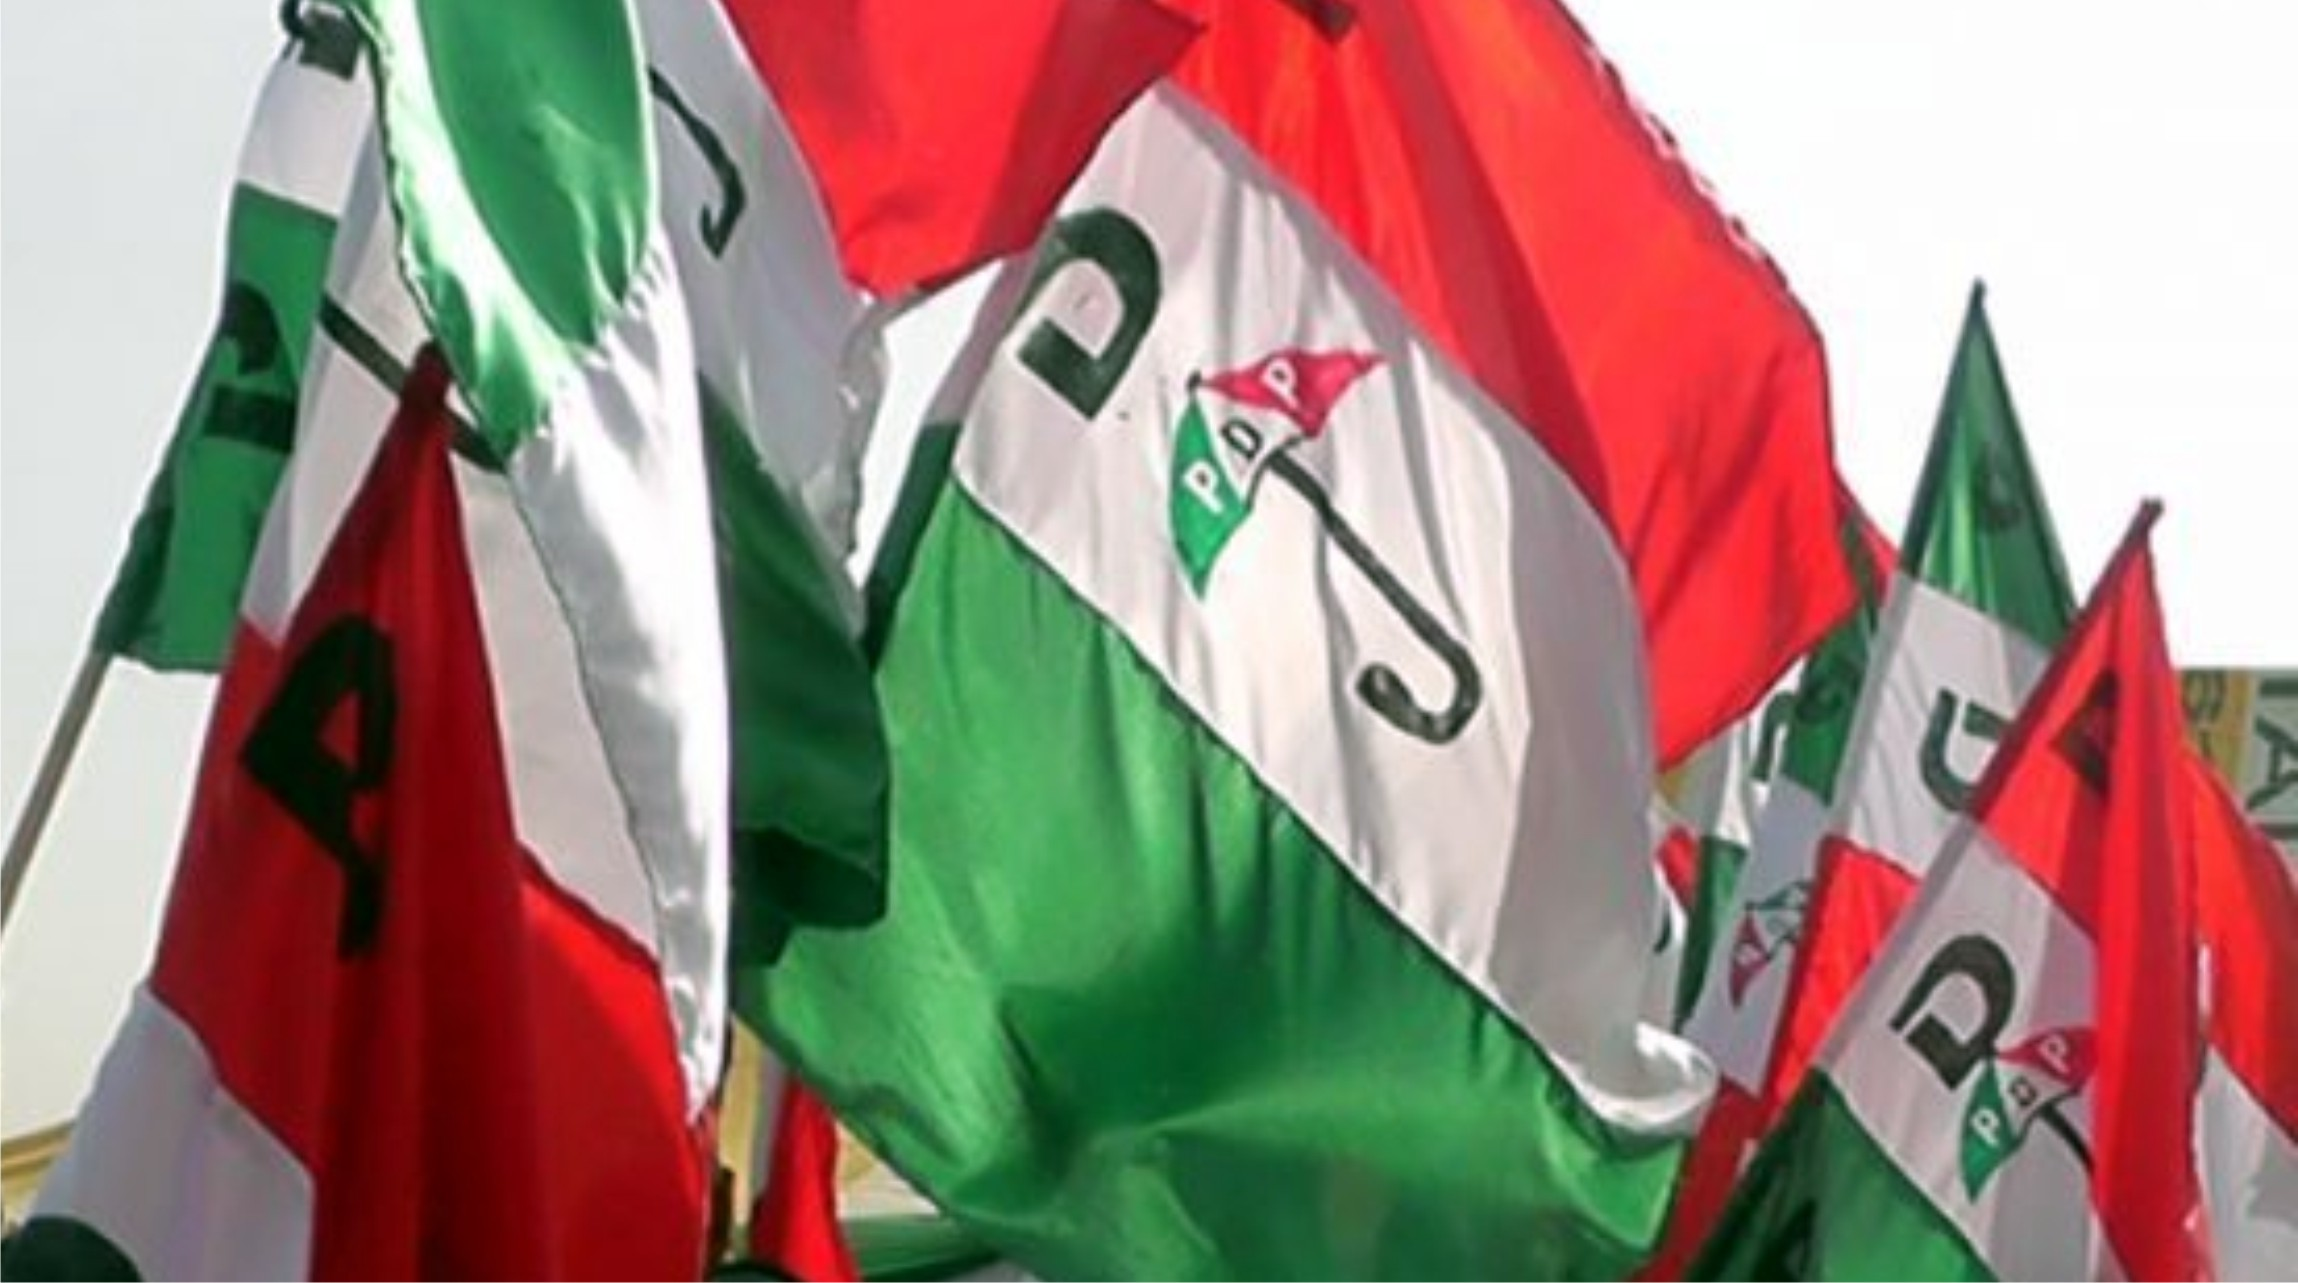 Imo: PDP Blows Hot, Calls For Tanko's Resignation